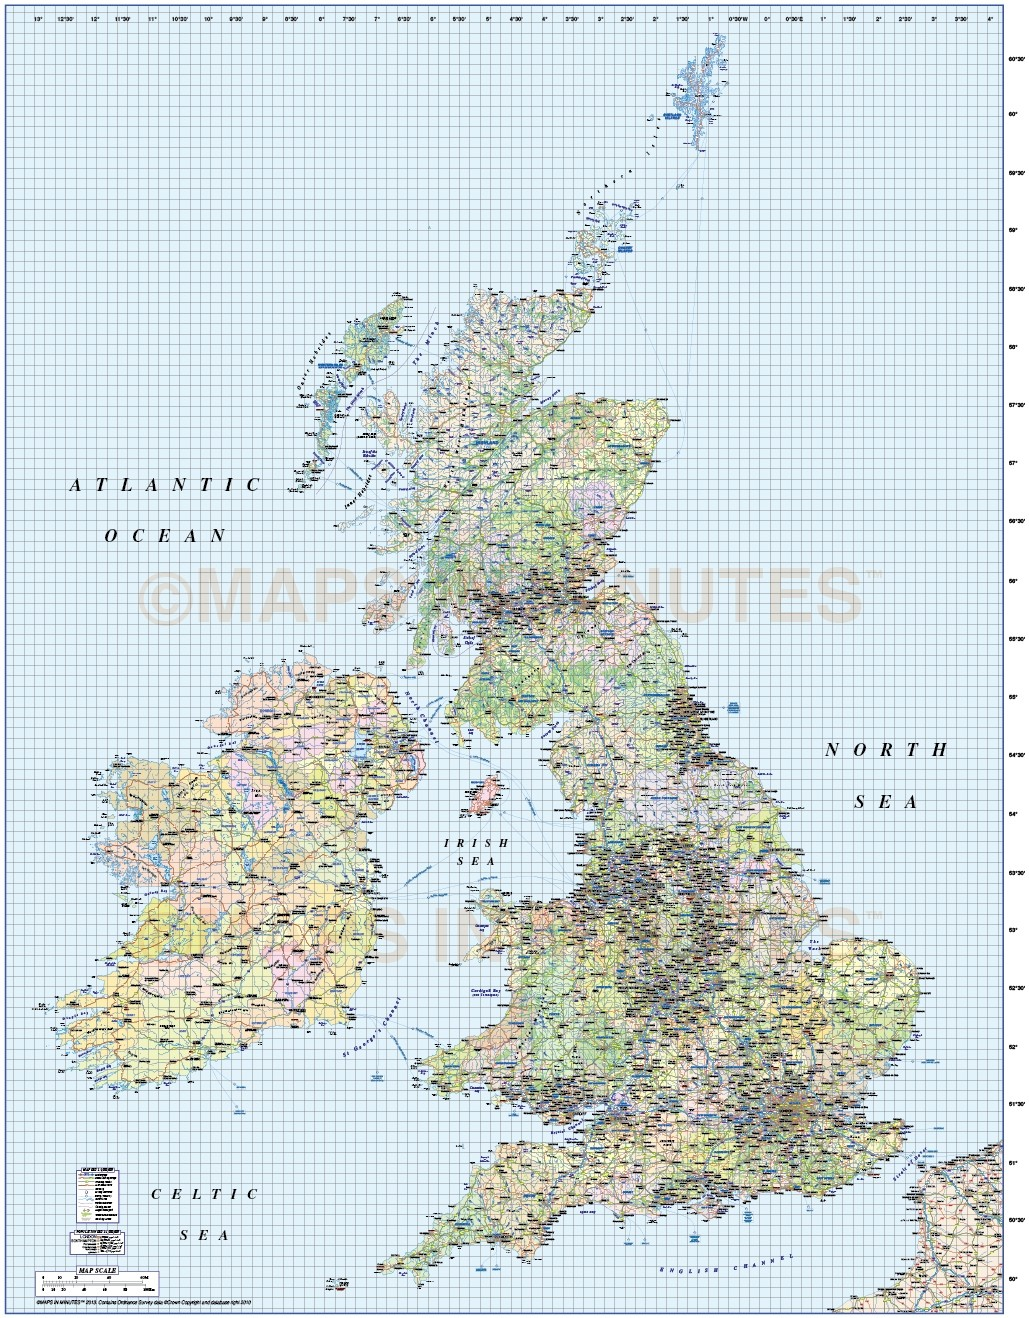 british isles UK county road and rail map 1m scale in – Road Map Uk